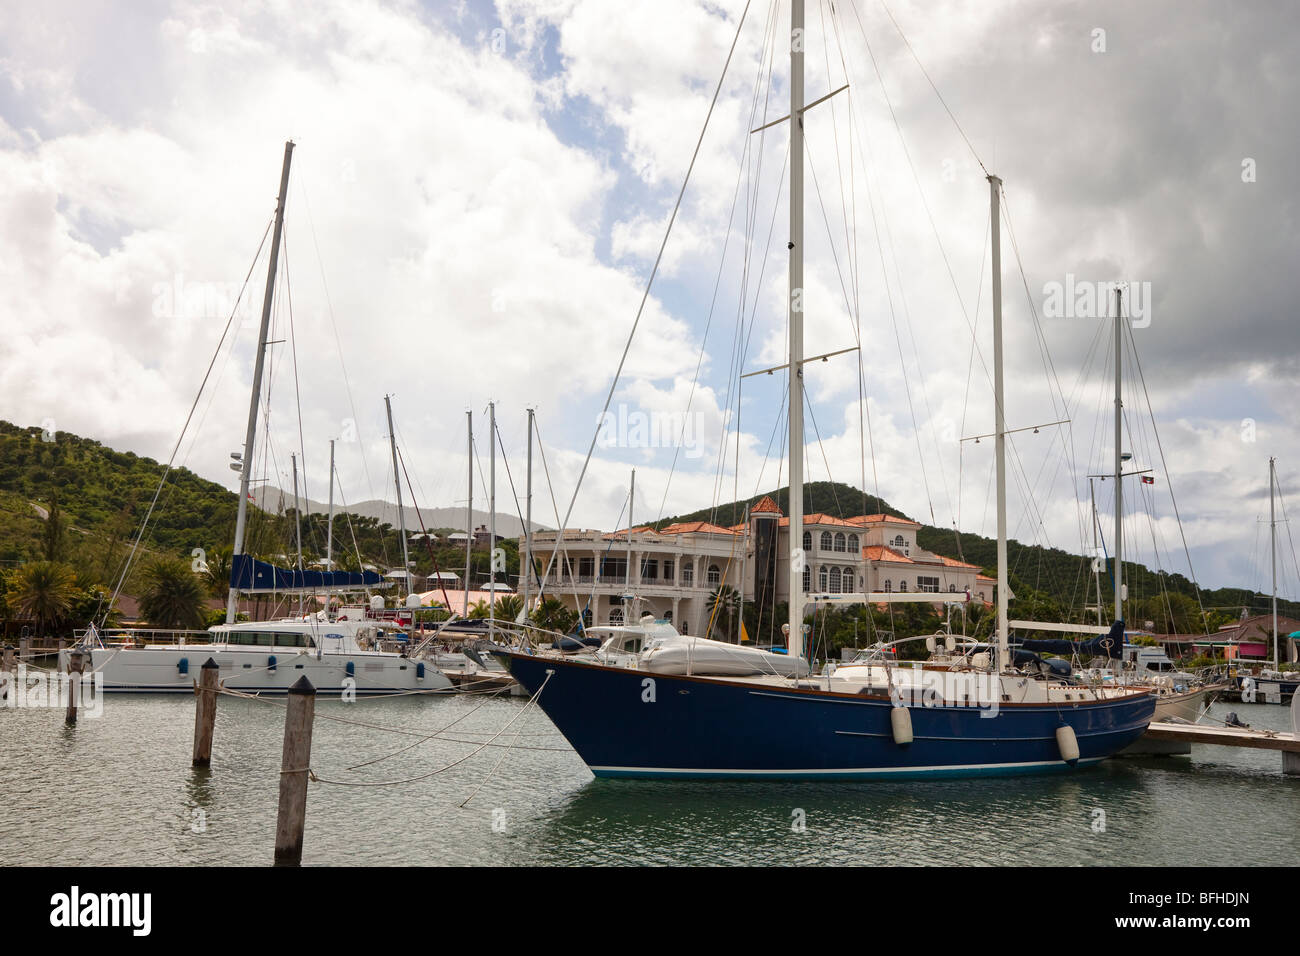 Yachts in marina at Jolly Harbour, Antigua, Caribbean West Indies - Stock Image